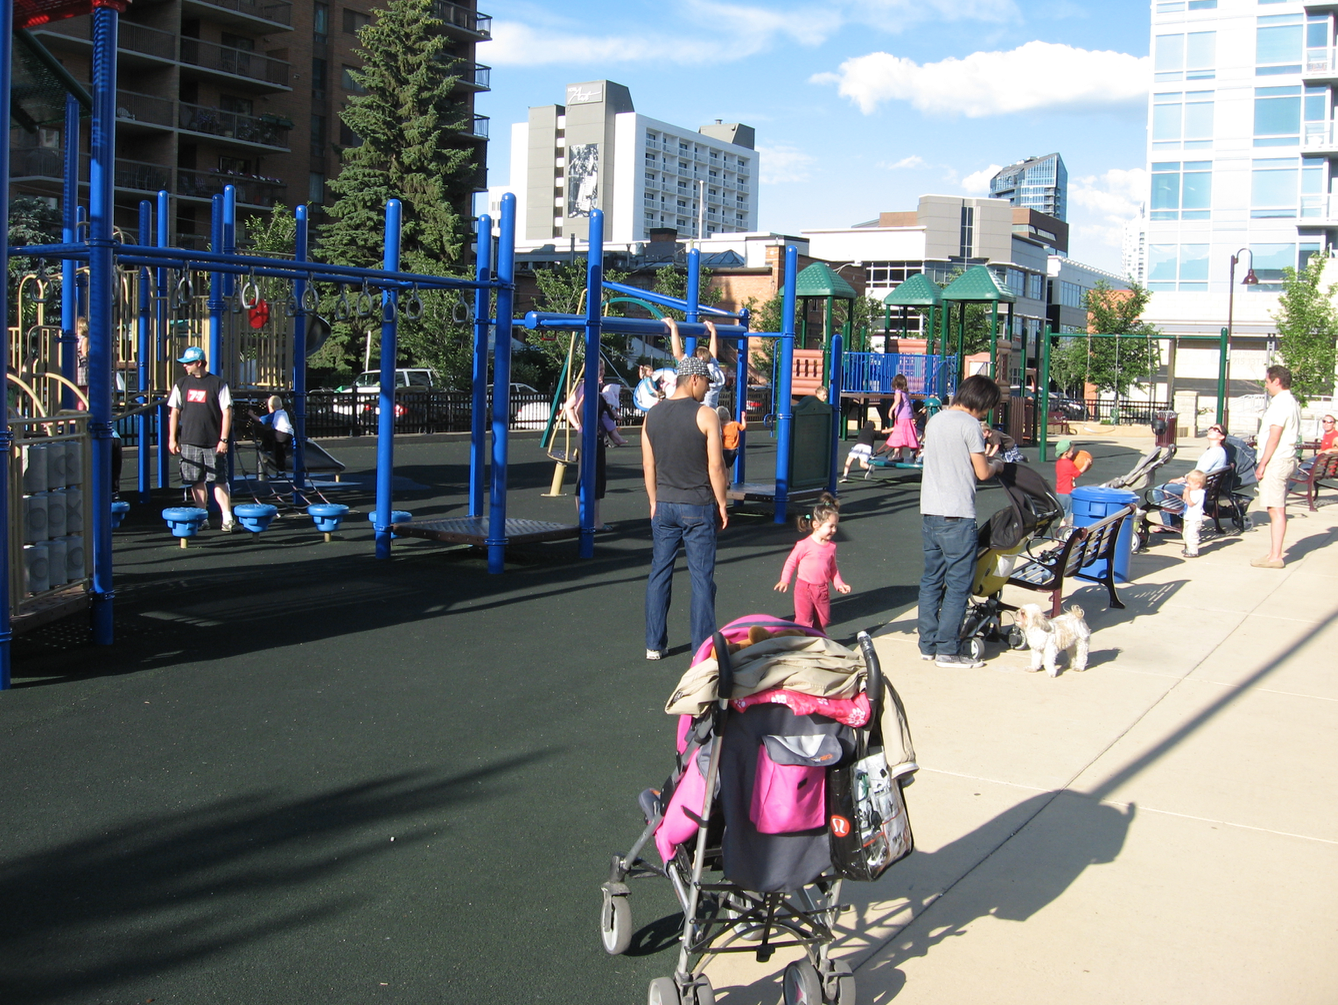 Calgary's City Centre boast dozens of children's playgrounds. I did't see a single playground in Nashville's City Centre.